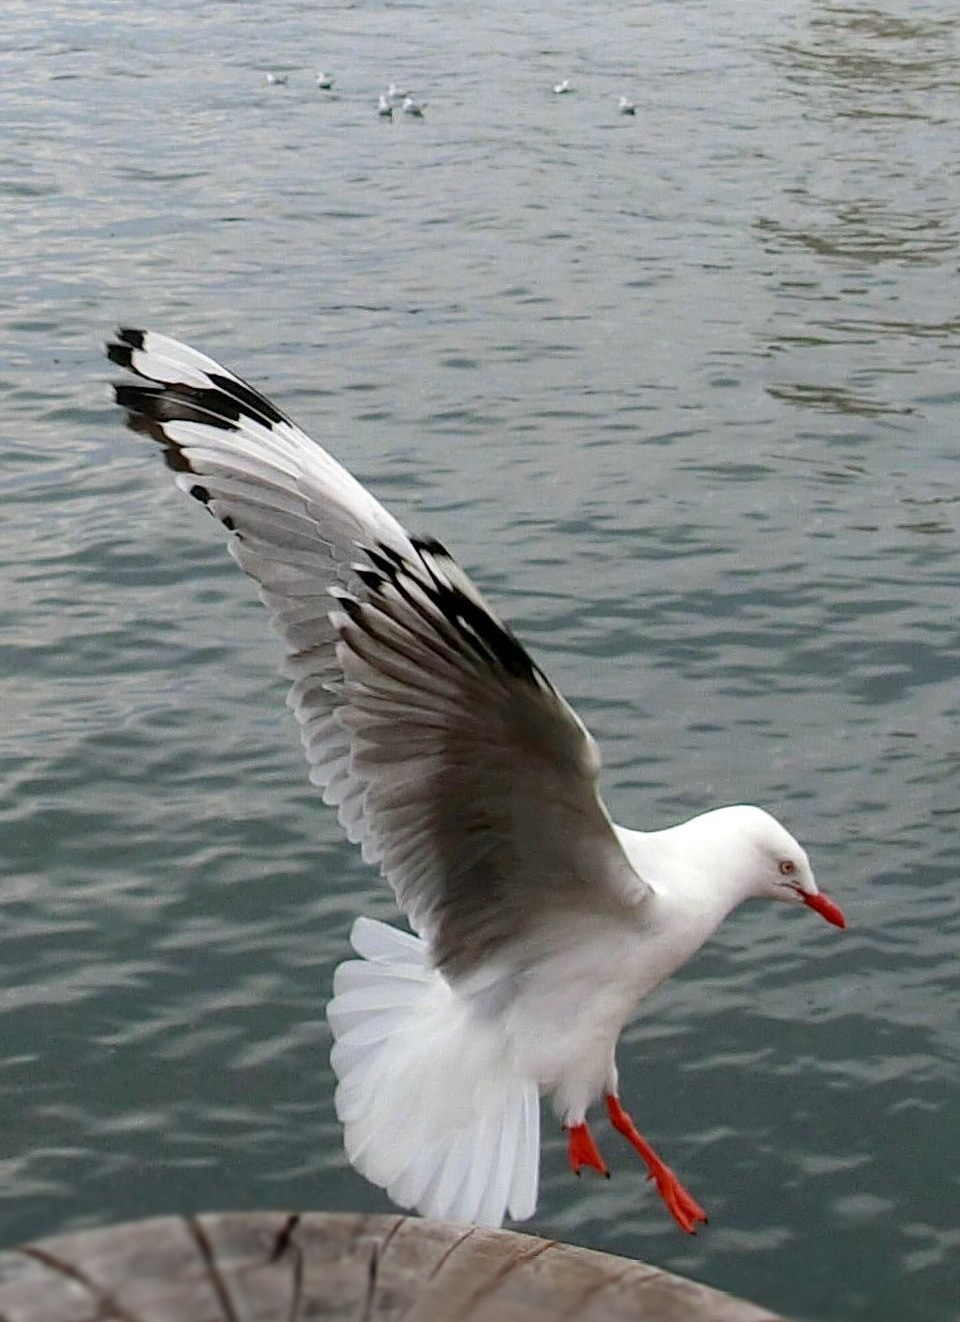 Seagull-3 by pop88123